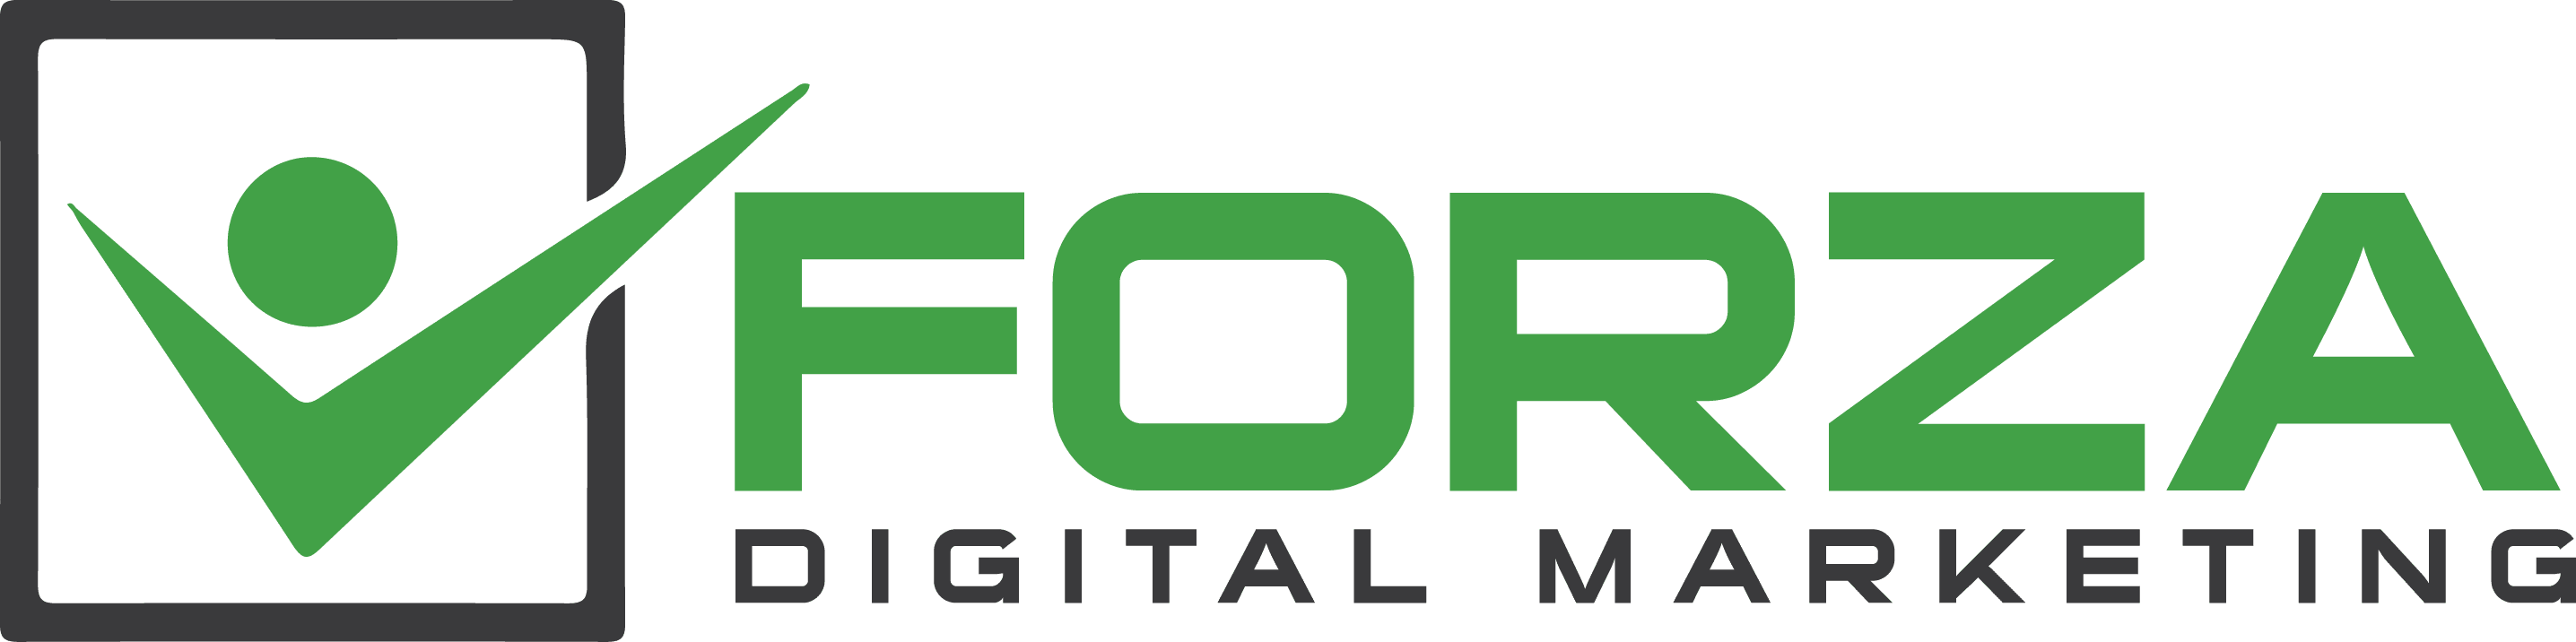 Forza Digital Marketing - SEO Agency